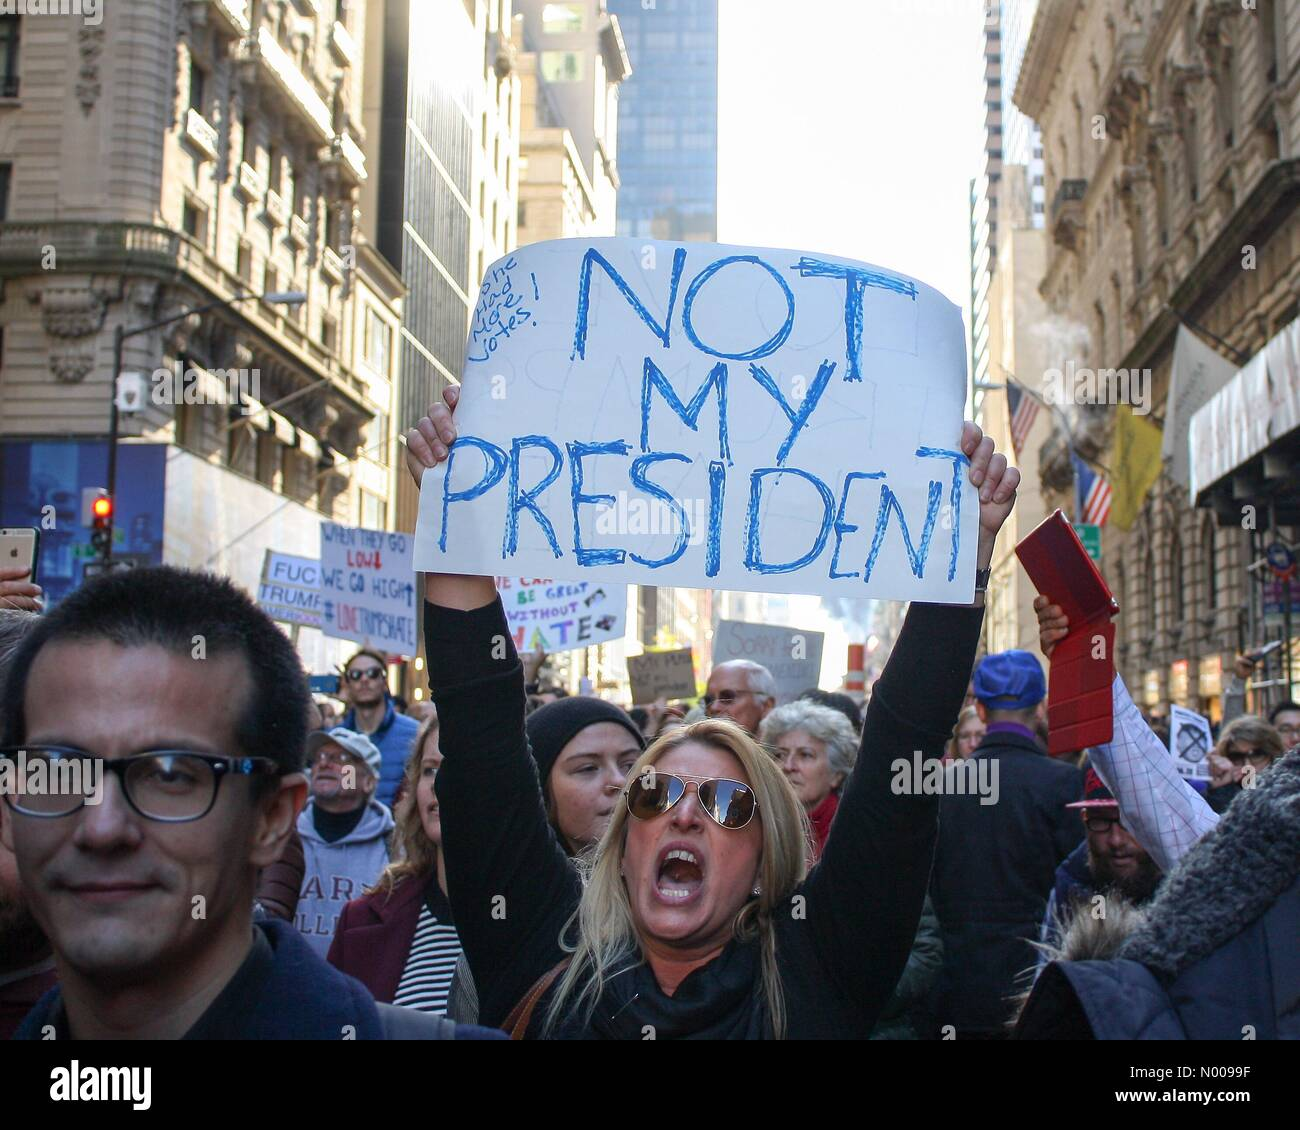 New York, New York, USA. 12th Nov, 2016. Woman holdinhsignshouts at NYC protest against Donald Trump Credit:  BumbyPix Stock Photo